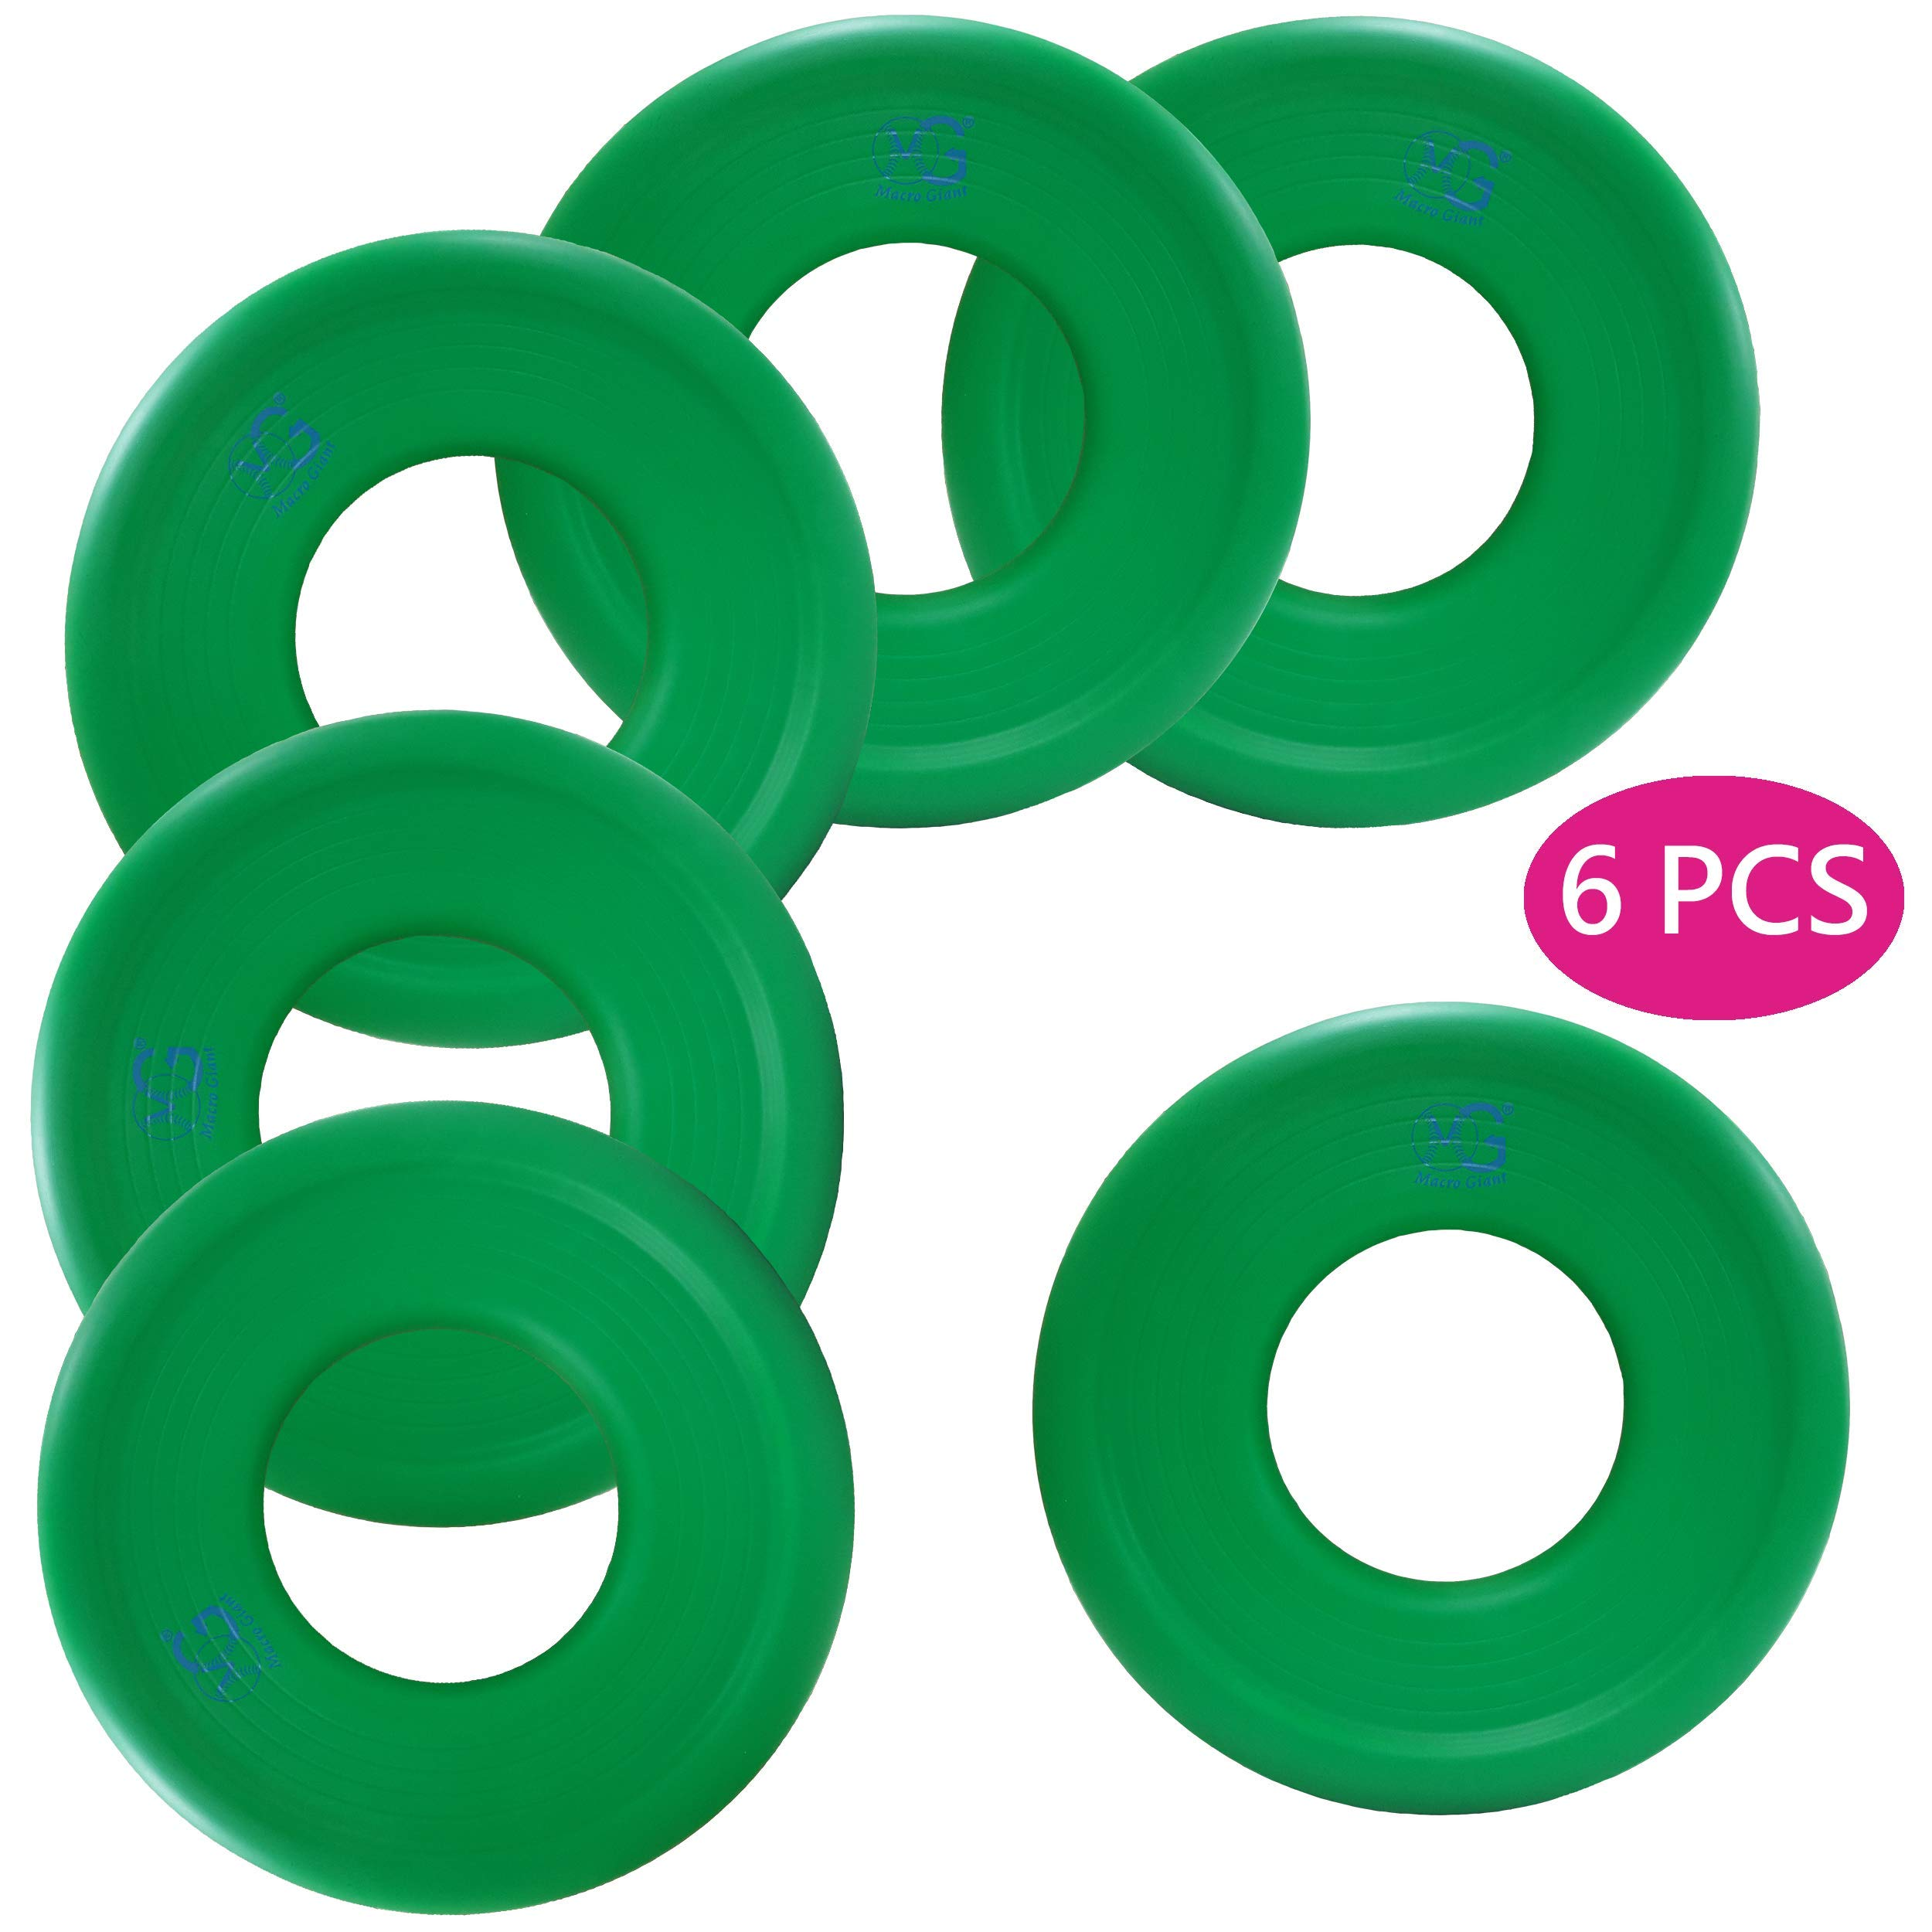 Macro Giant 9 Inch Soft Foam Frisbee Flying Discs, Set of 6, Green, Playground, Kid Sports Toy, Ring Toss Game, Parenting Activity, Outdoor Indoor, Camp Game